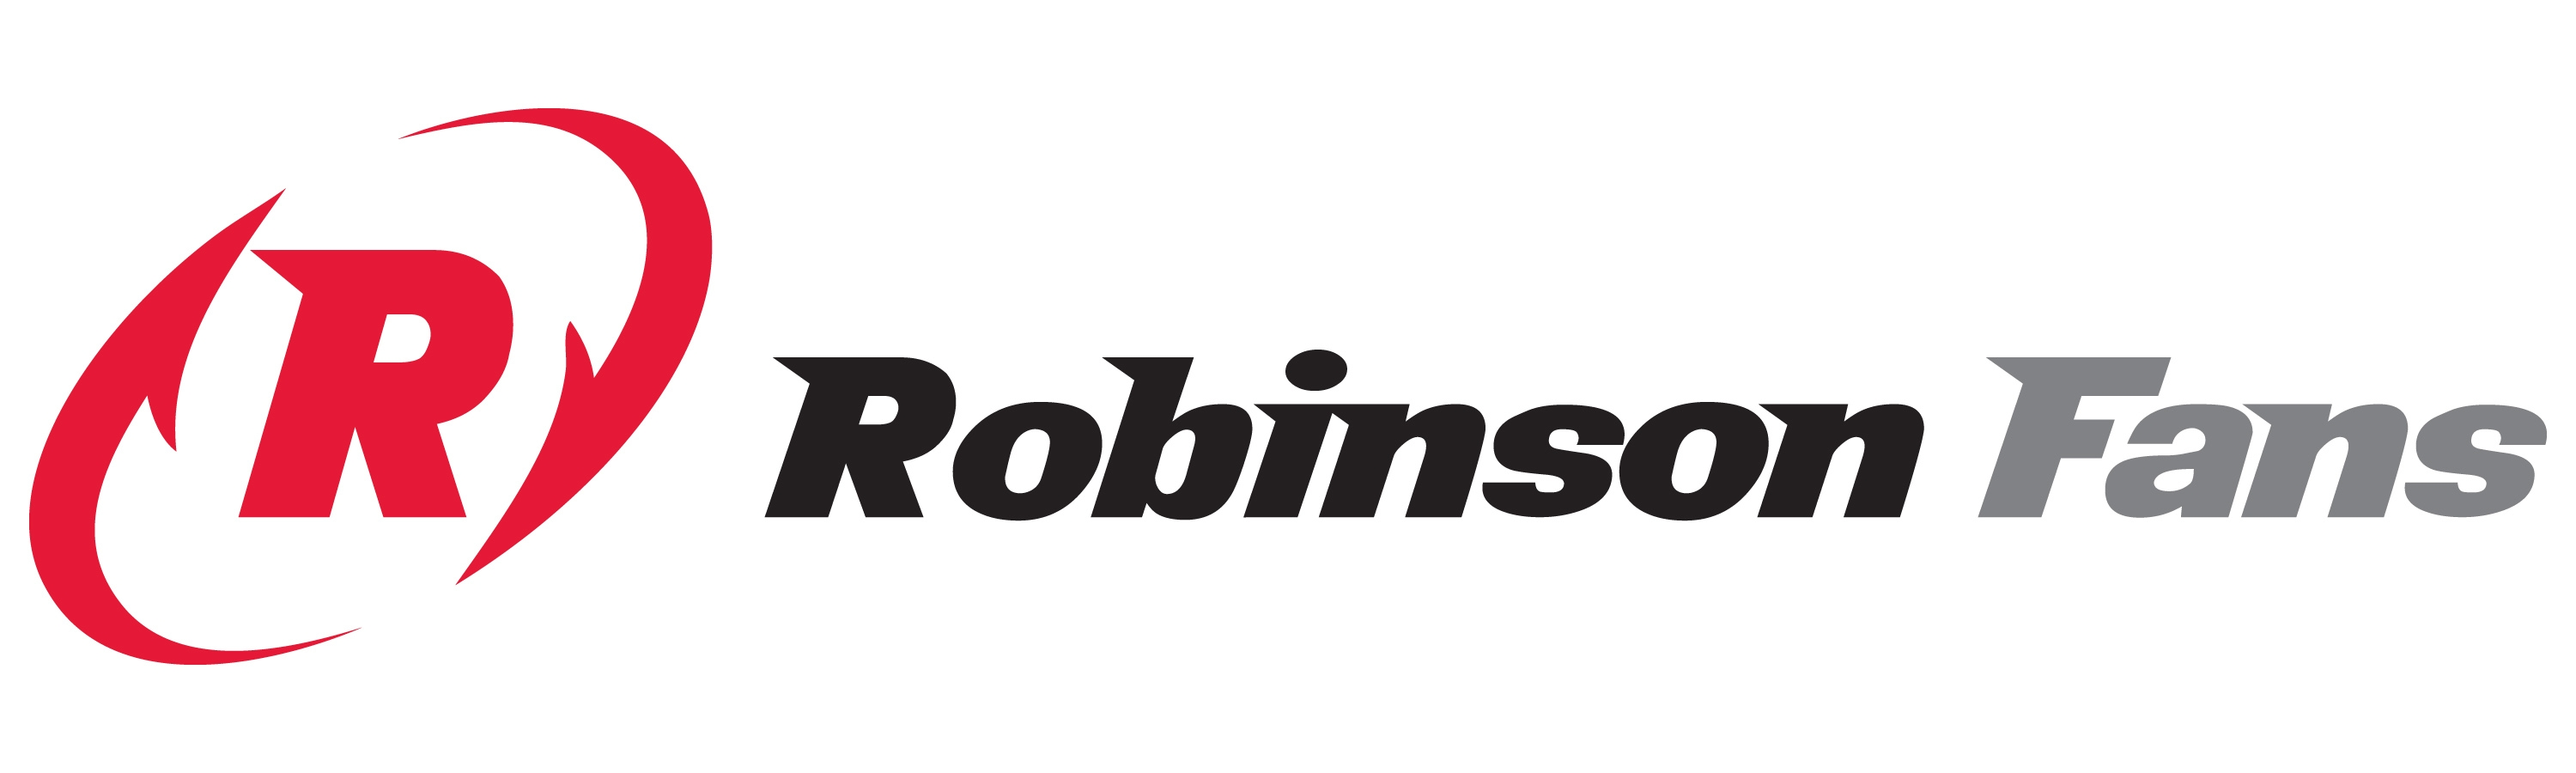 Robinson Fans Inc 03.31.09 New Logo